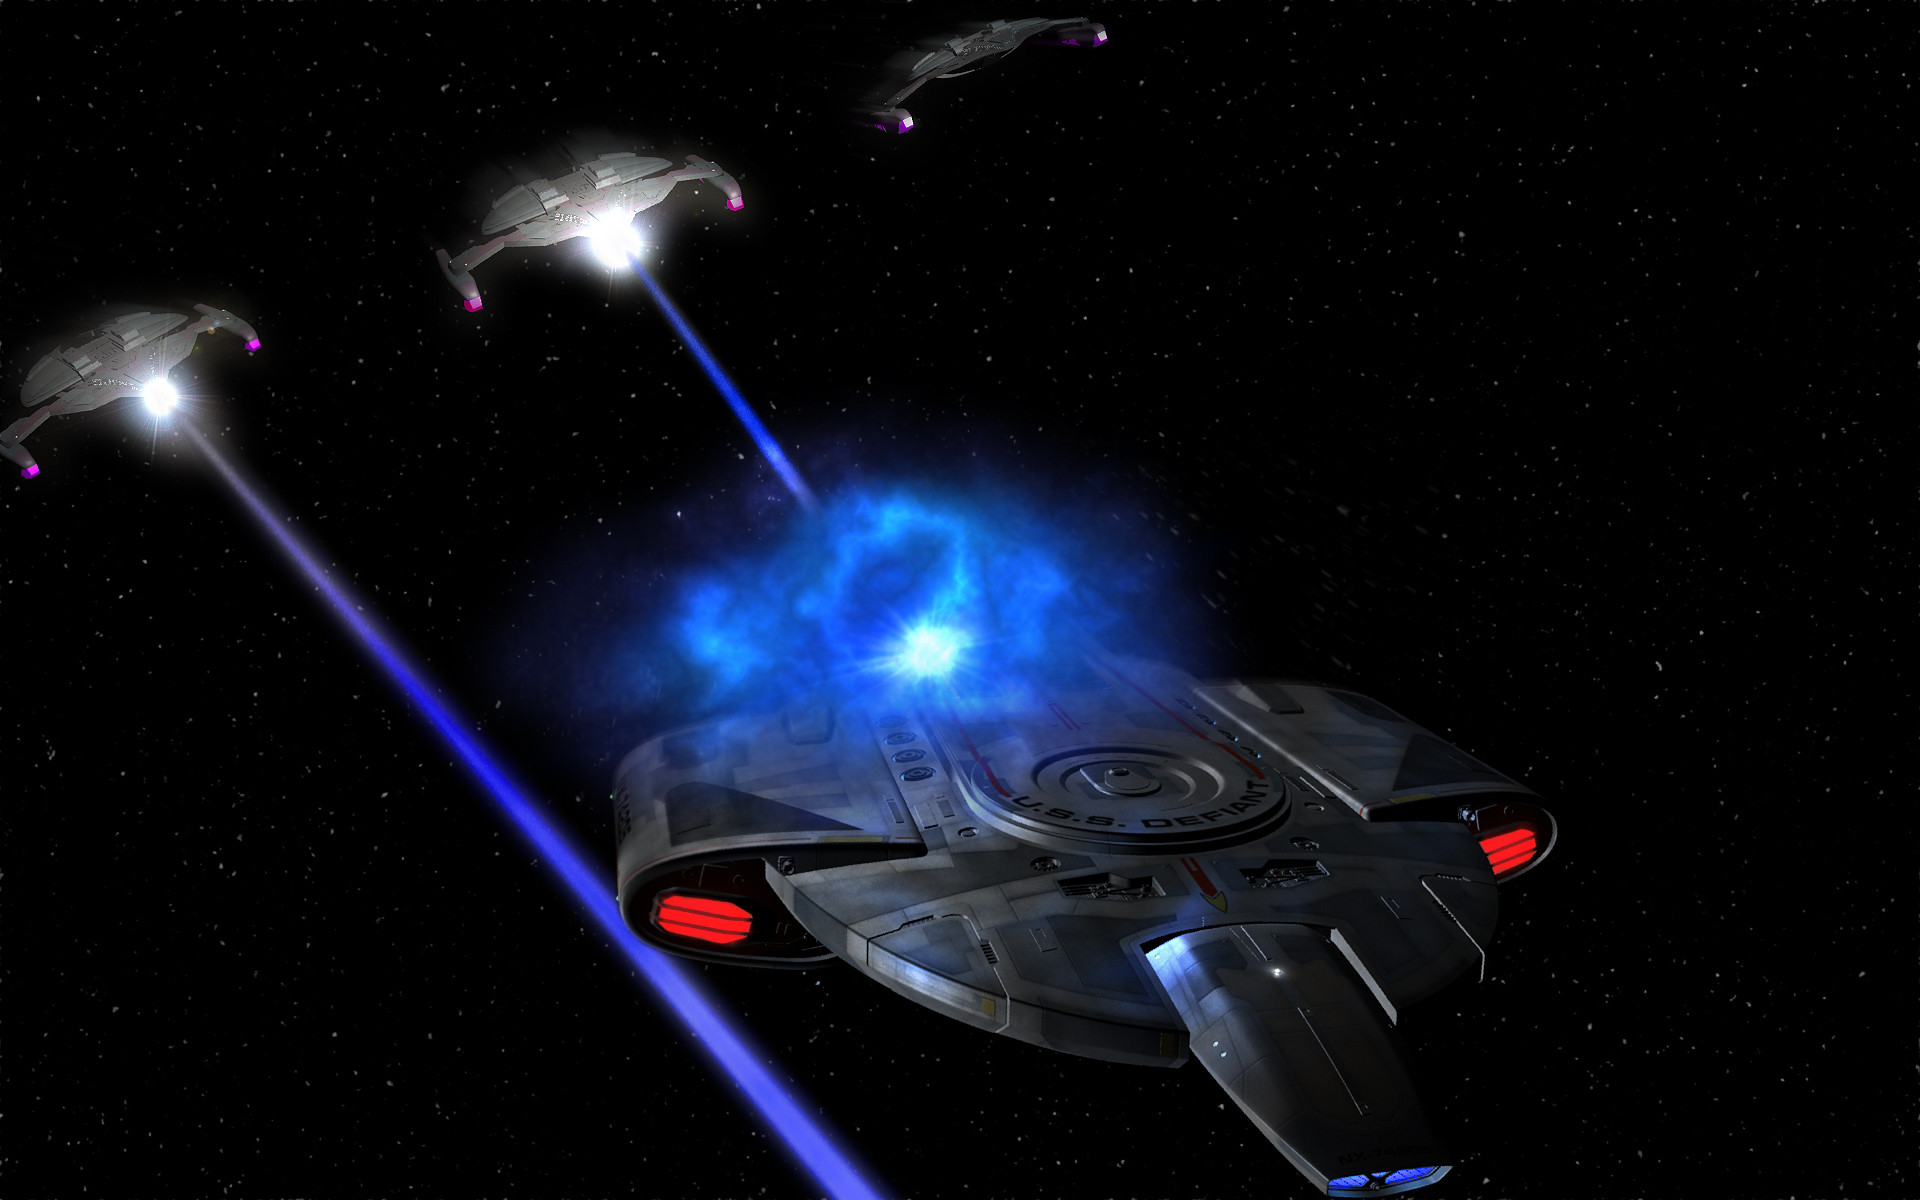 Star Trek desktop wallpapers in high definition – classic and new .